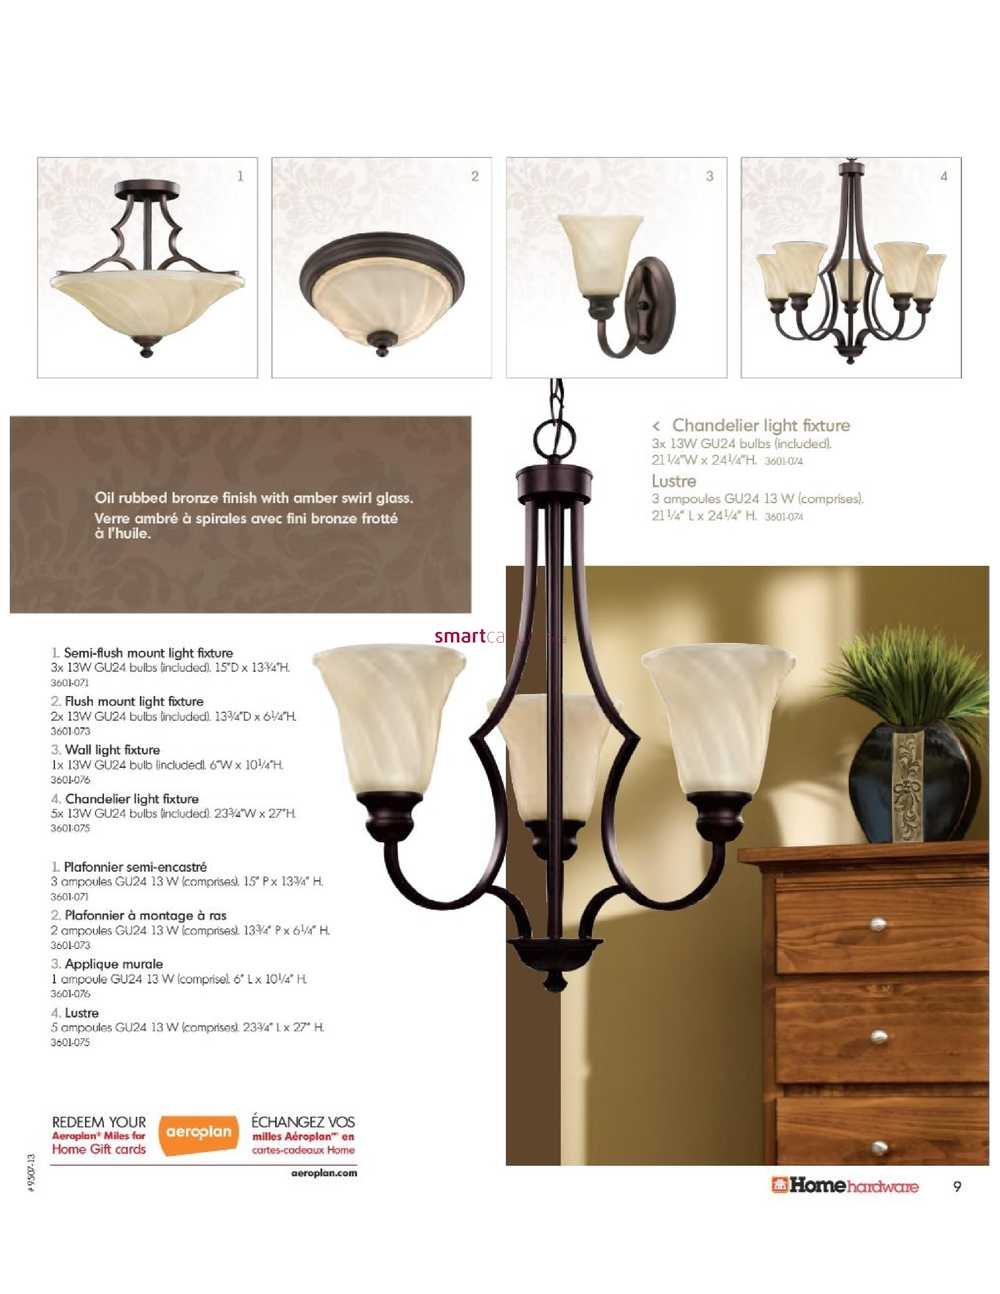 Home hardware lightingelectrical catalog home hardware lightingelectrical catalog aloadofball Gallery